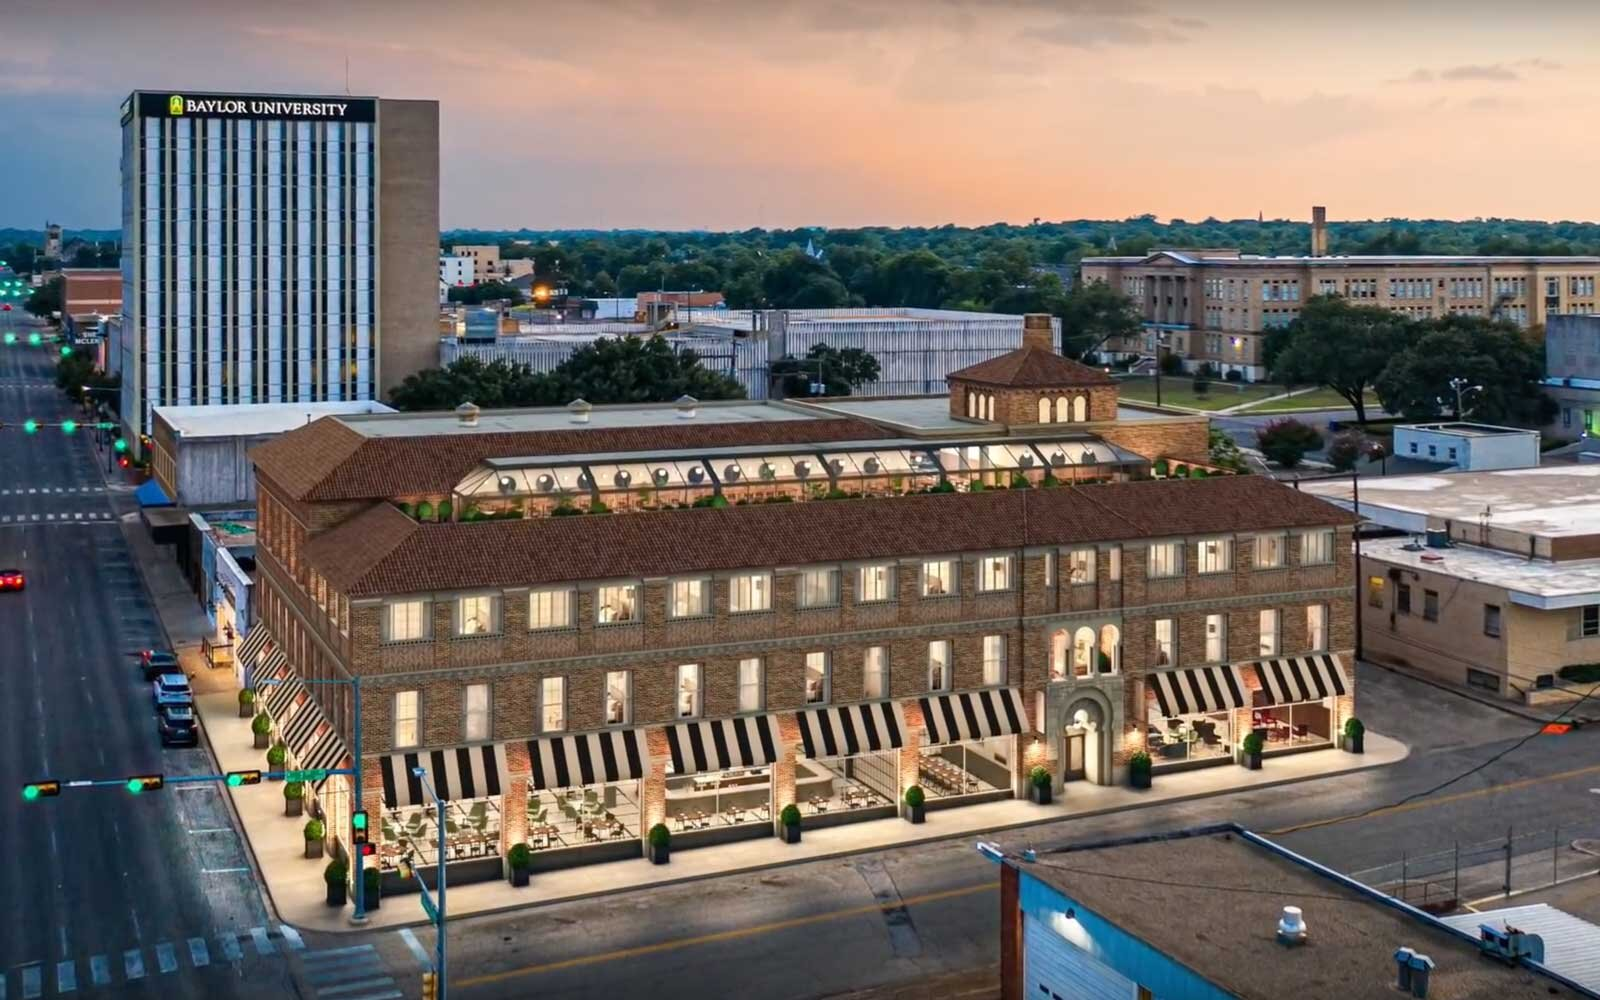 The former Grand Karem Shrine building, at 701 Washington Avenue, will be refurbished into a Magnolia-branded hotel.